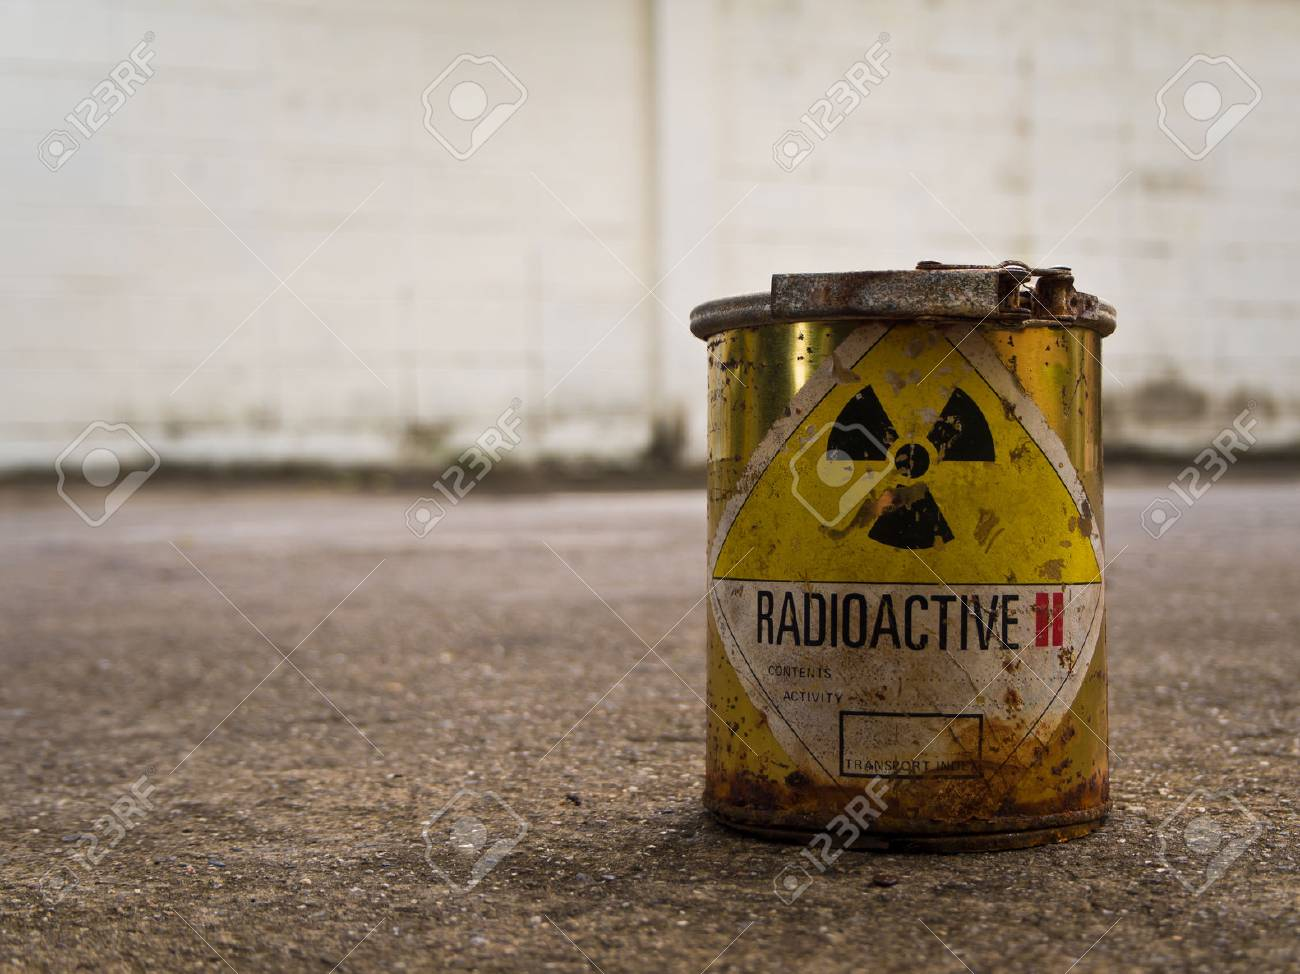 Decay of old Radioative material container - 61729890